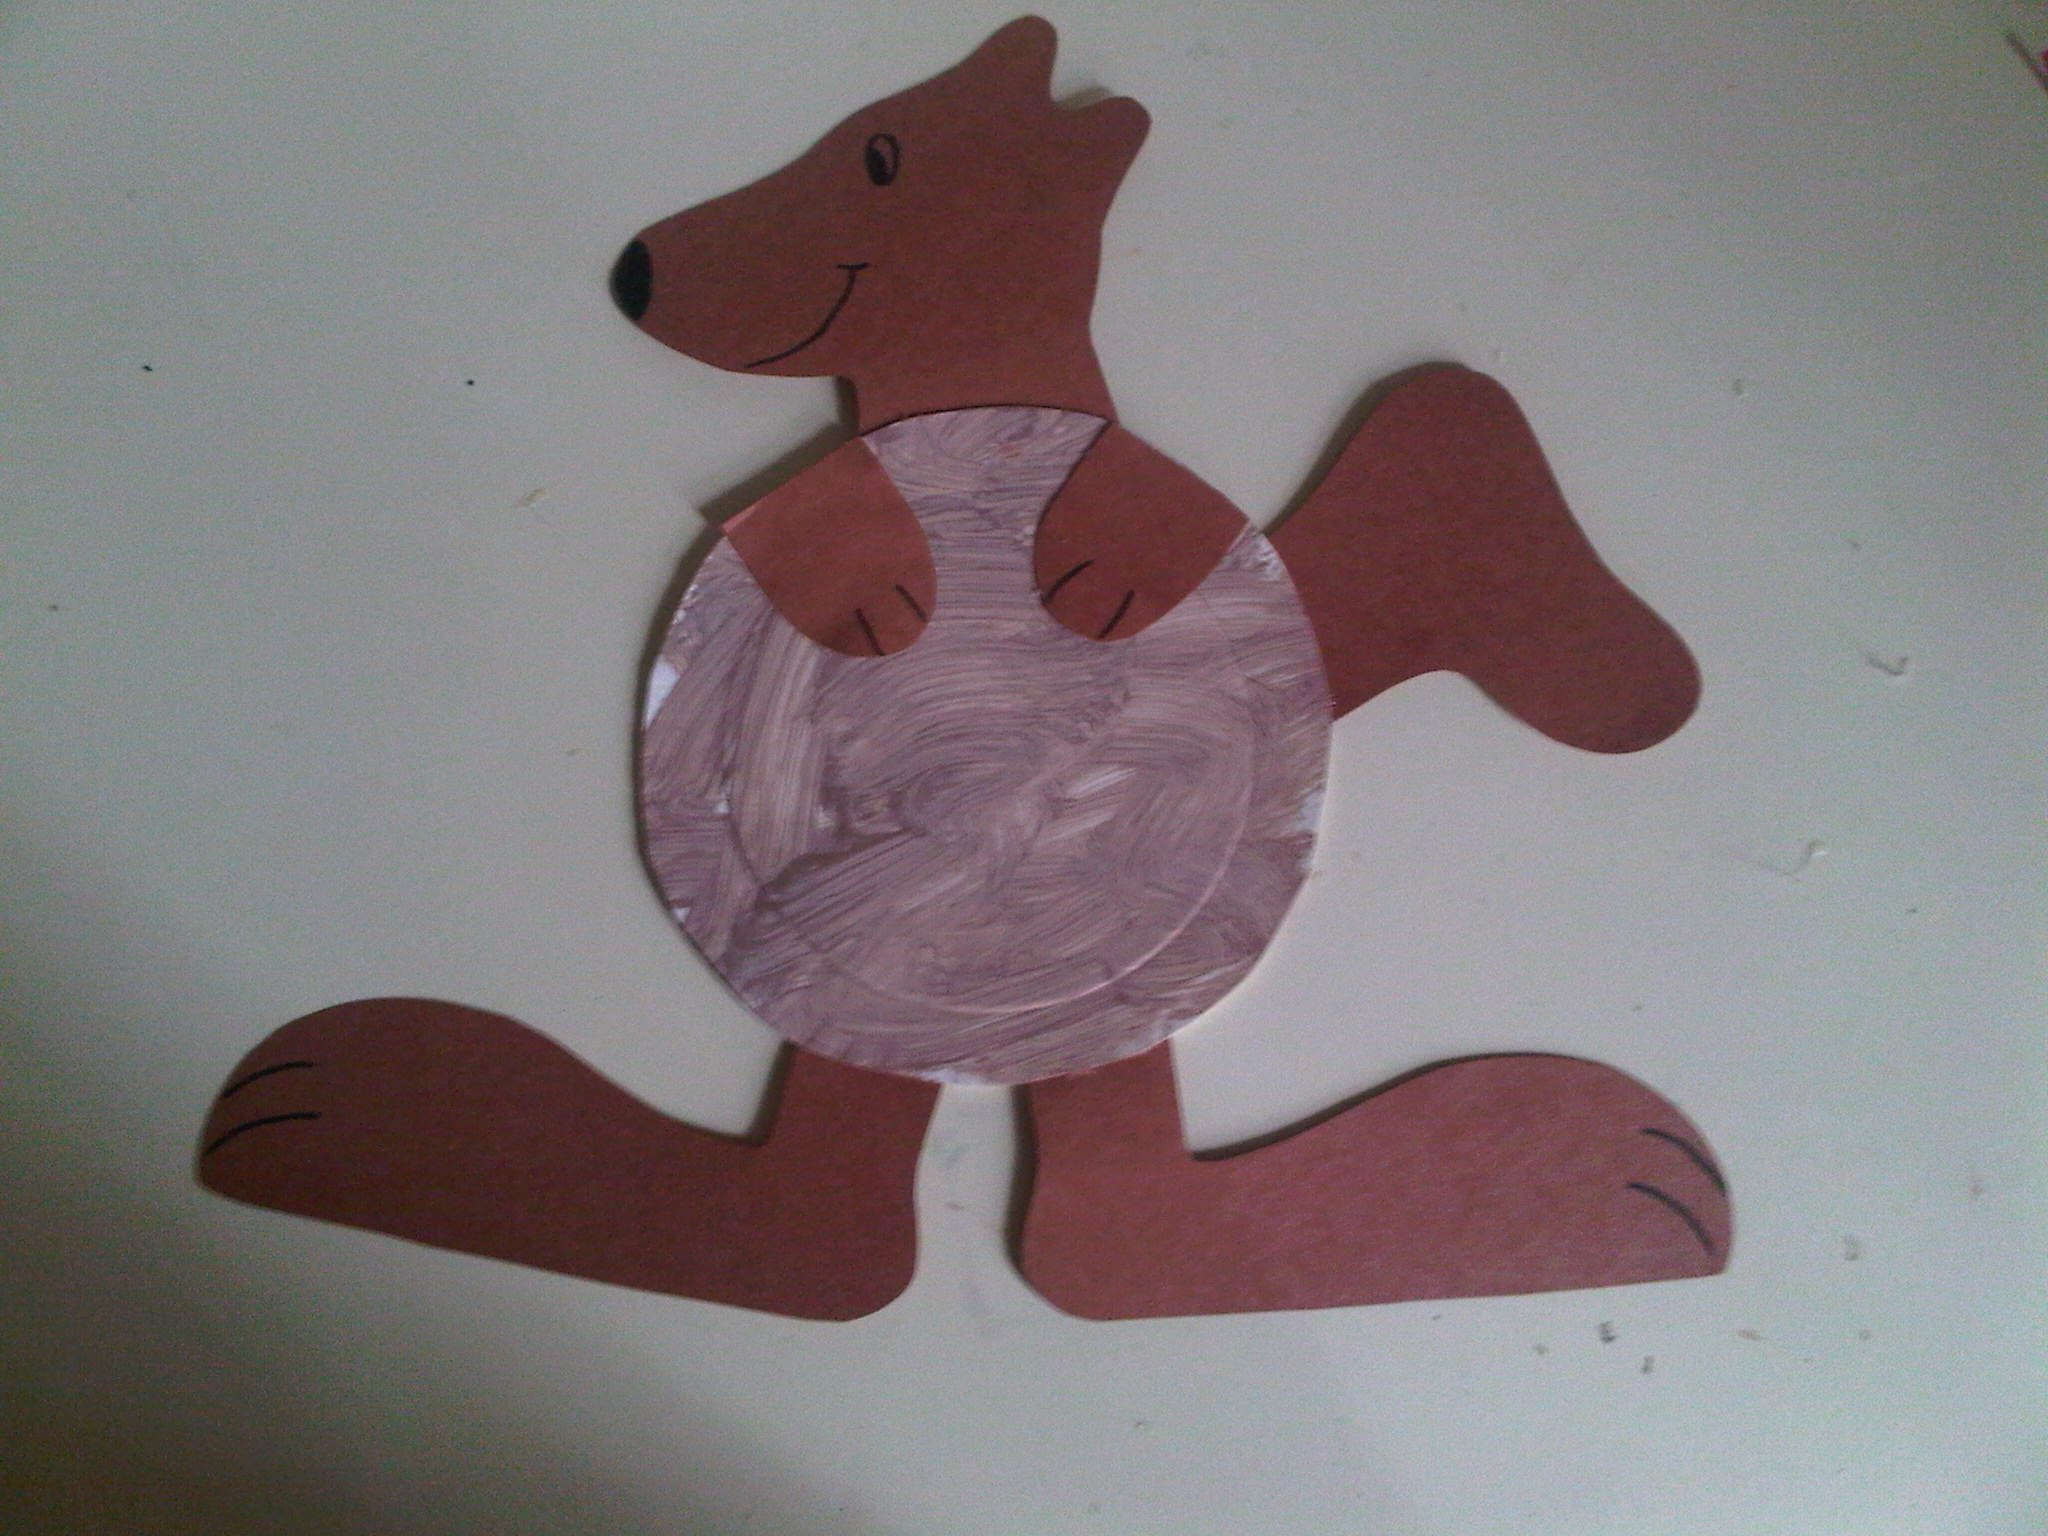 Ellie S Art Project Paper Plate Kangaroo